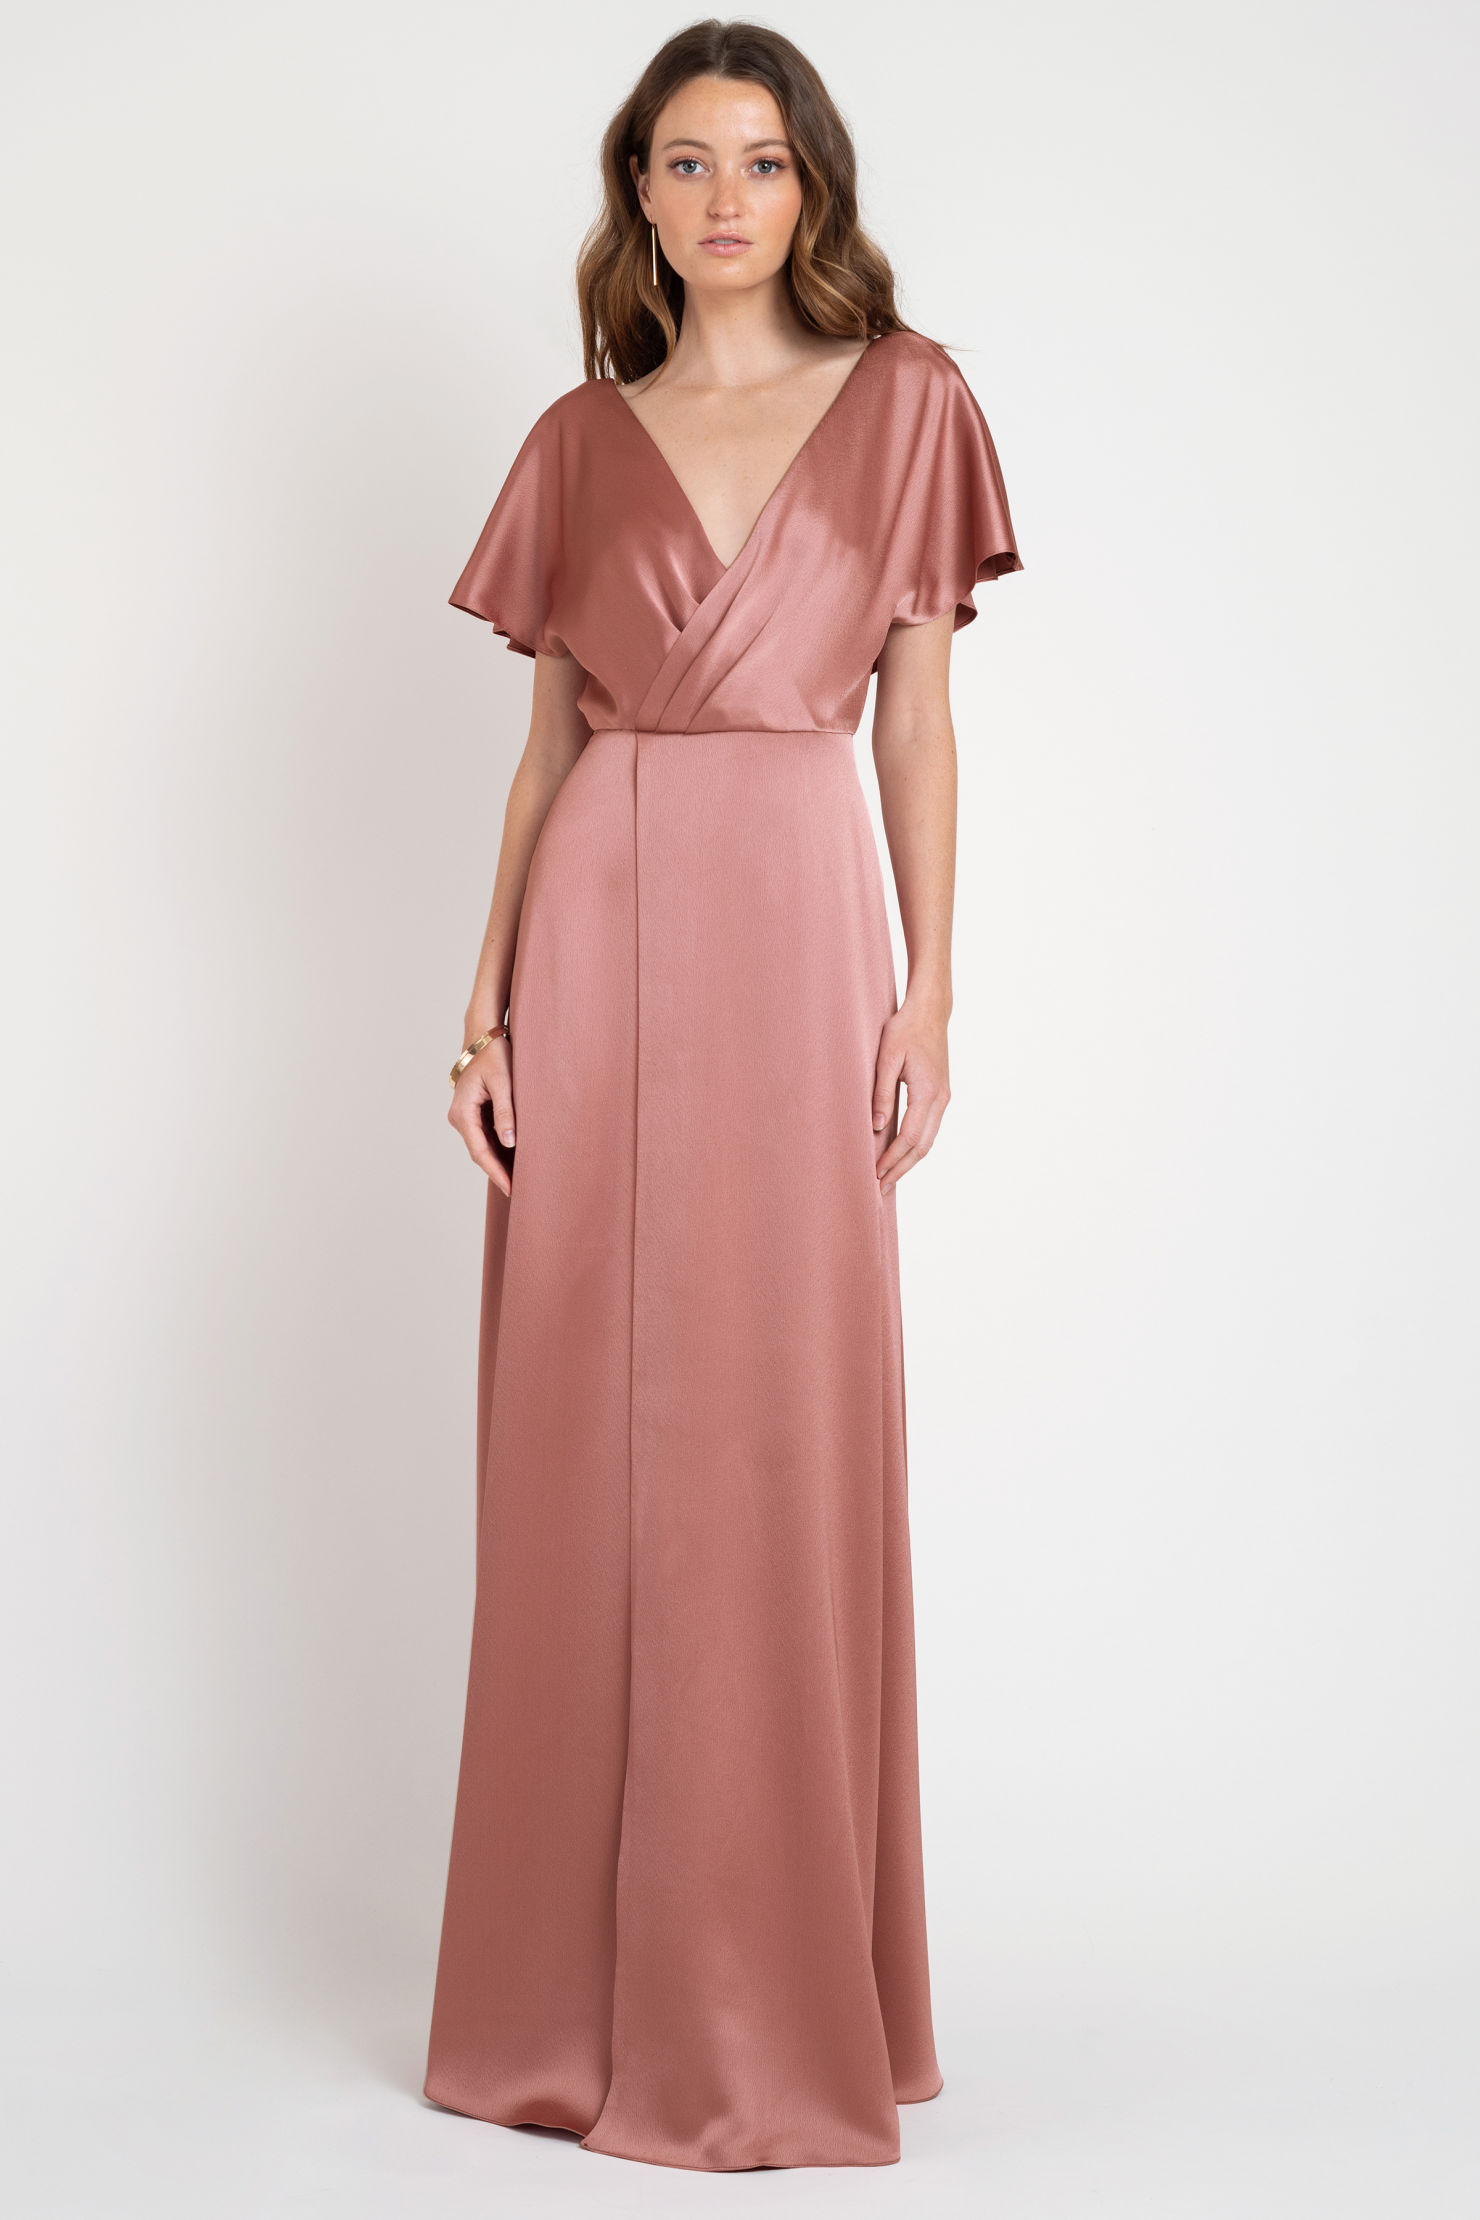 Raya Bridesmaids Dress by Jenny Yoo - English Rose